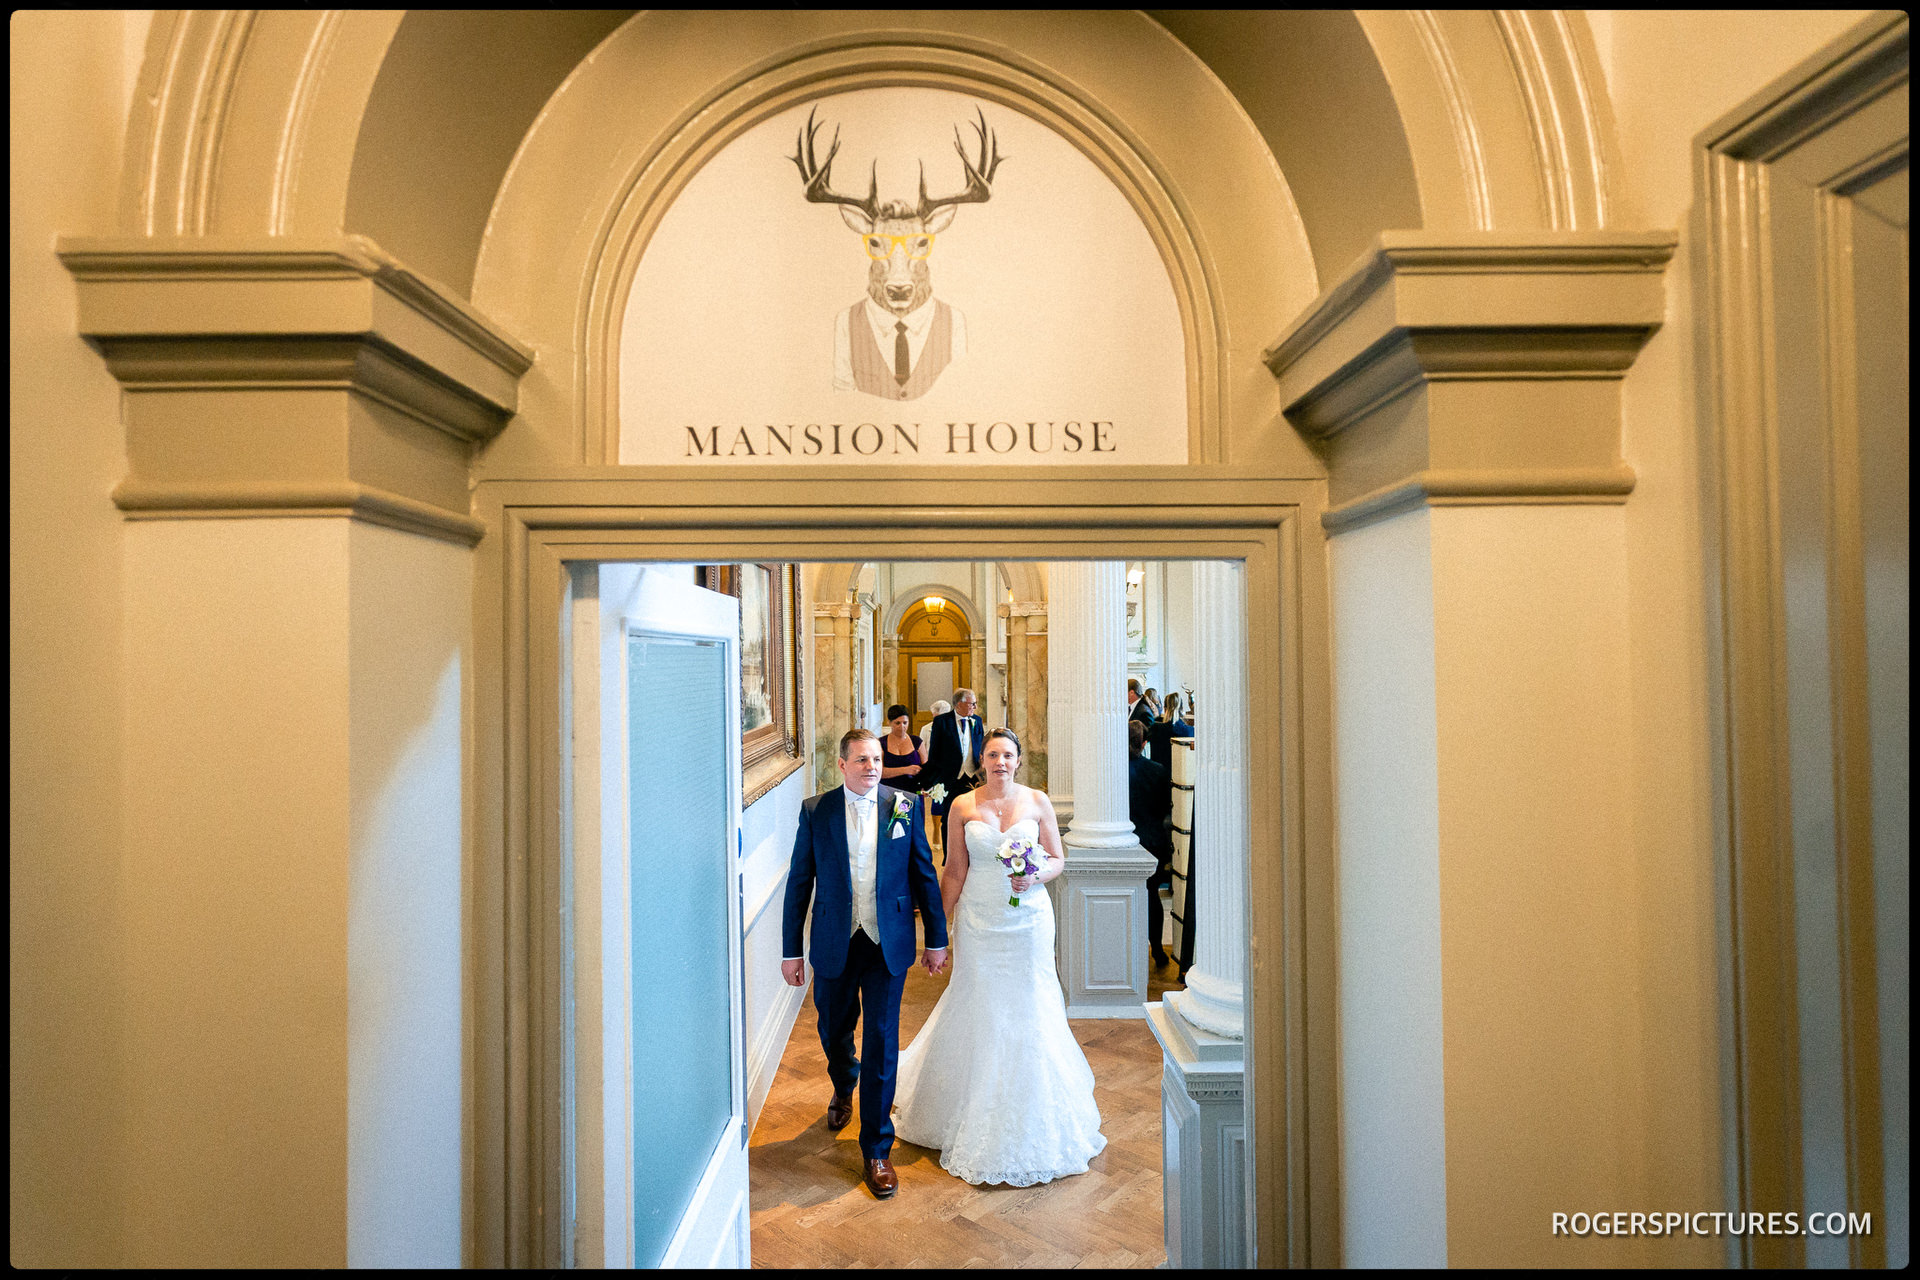 Mansion House at Wokefield Park wedding